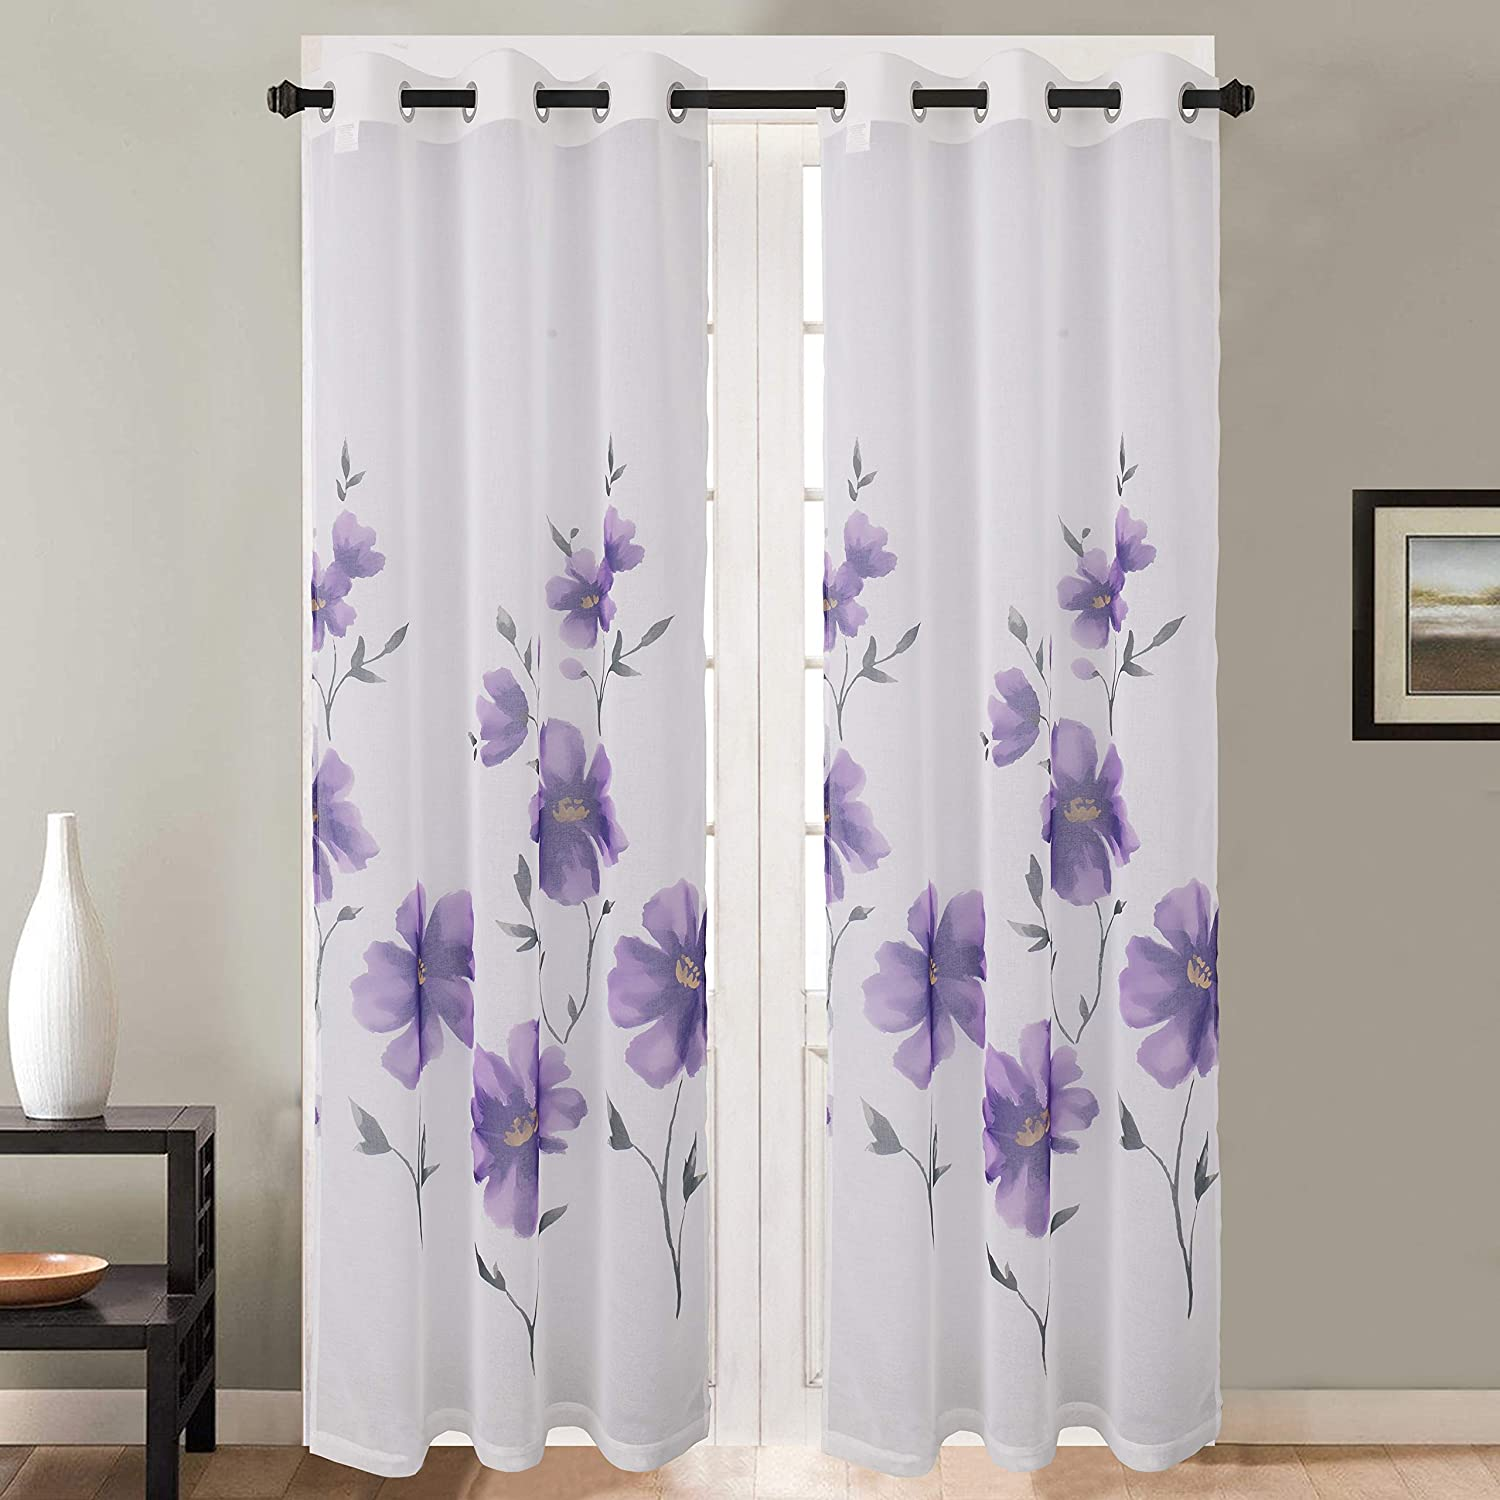 Dainty Home Victoria Printed 76x84'' Sheer Grommet Panel Pair with Floral Pattern, Violet